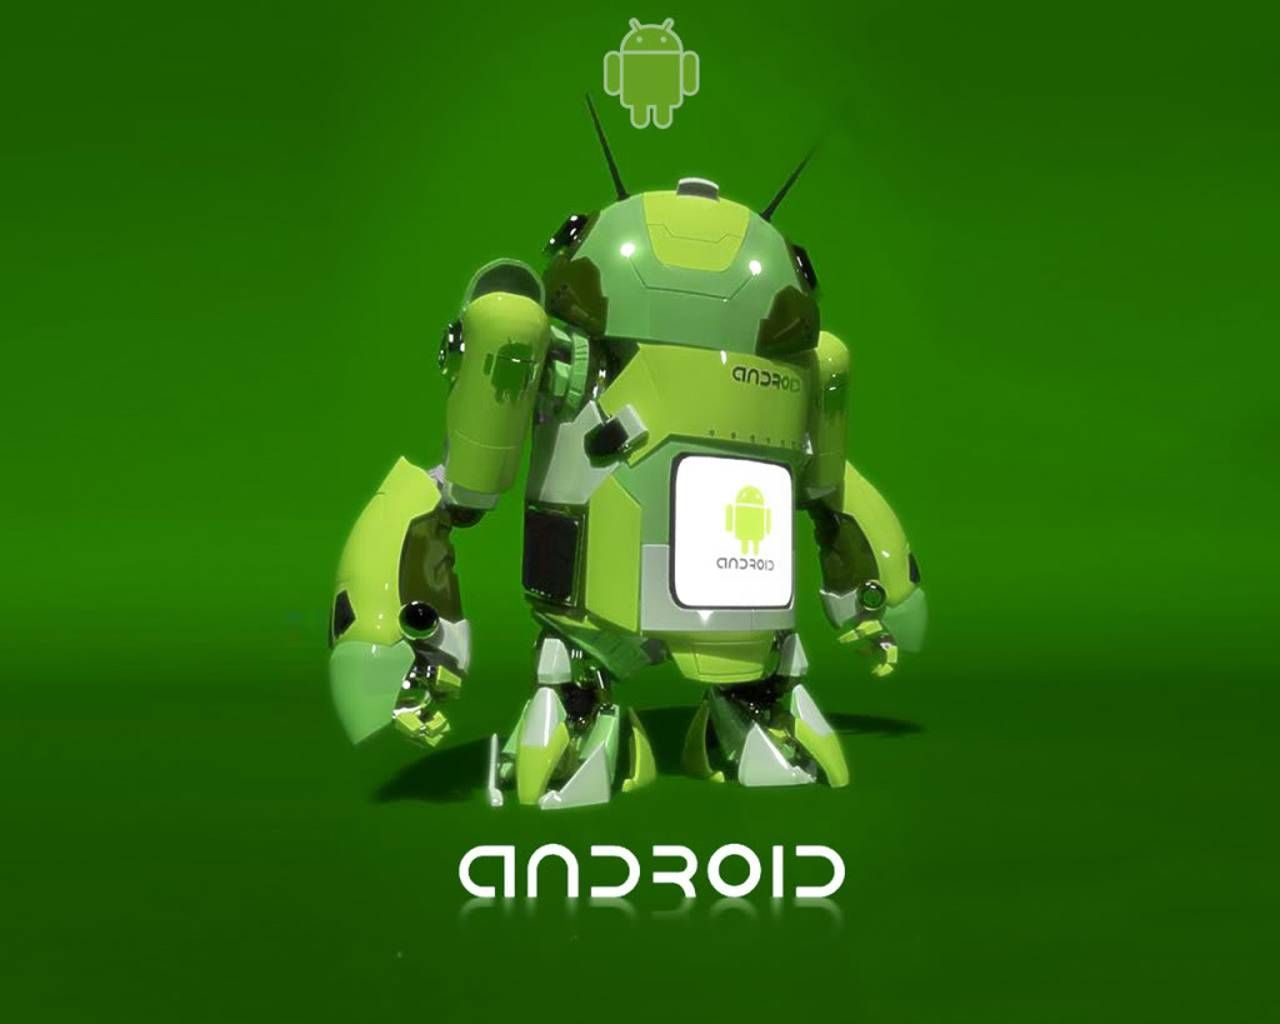 3d Wallpaper For Android Mobile: 3d Android Super Robot Wallpaper